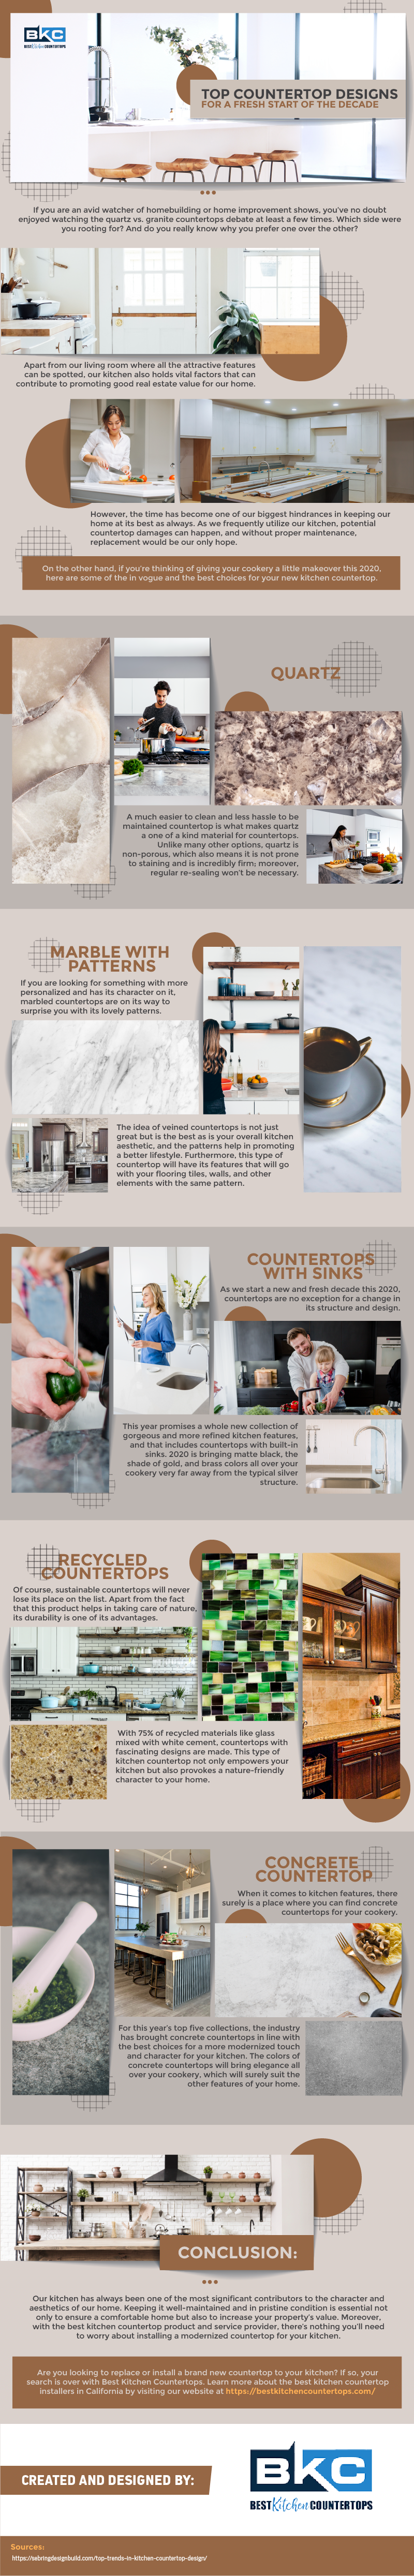 Top Countertop Designs for a Fresh Start of the Decade - Infographic